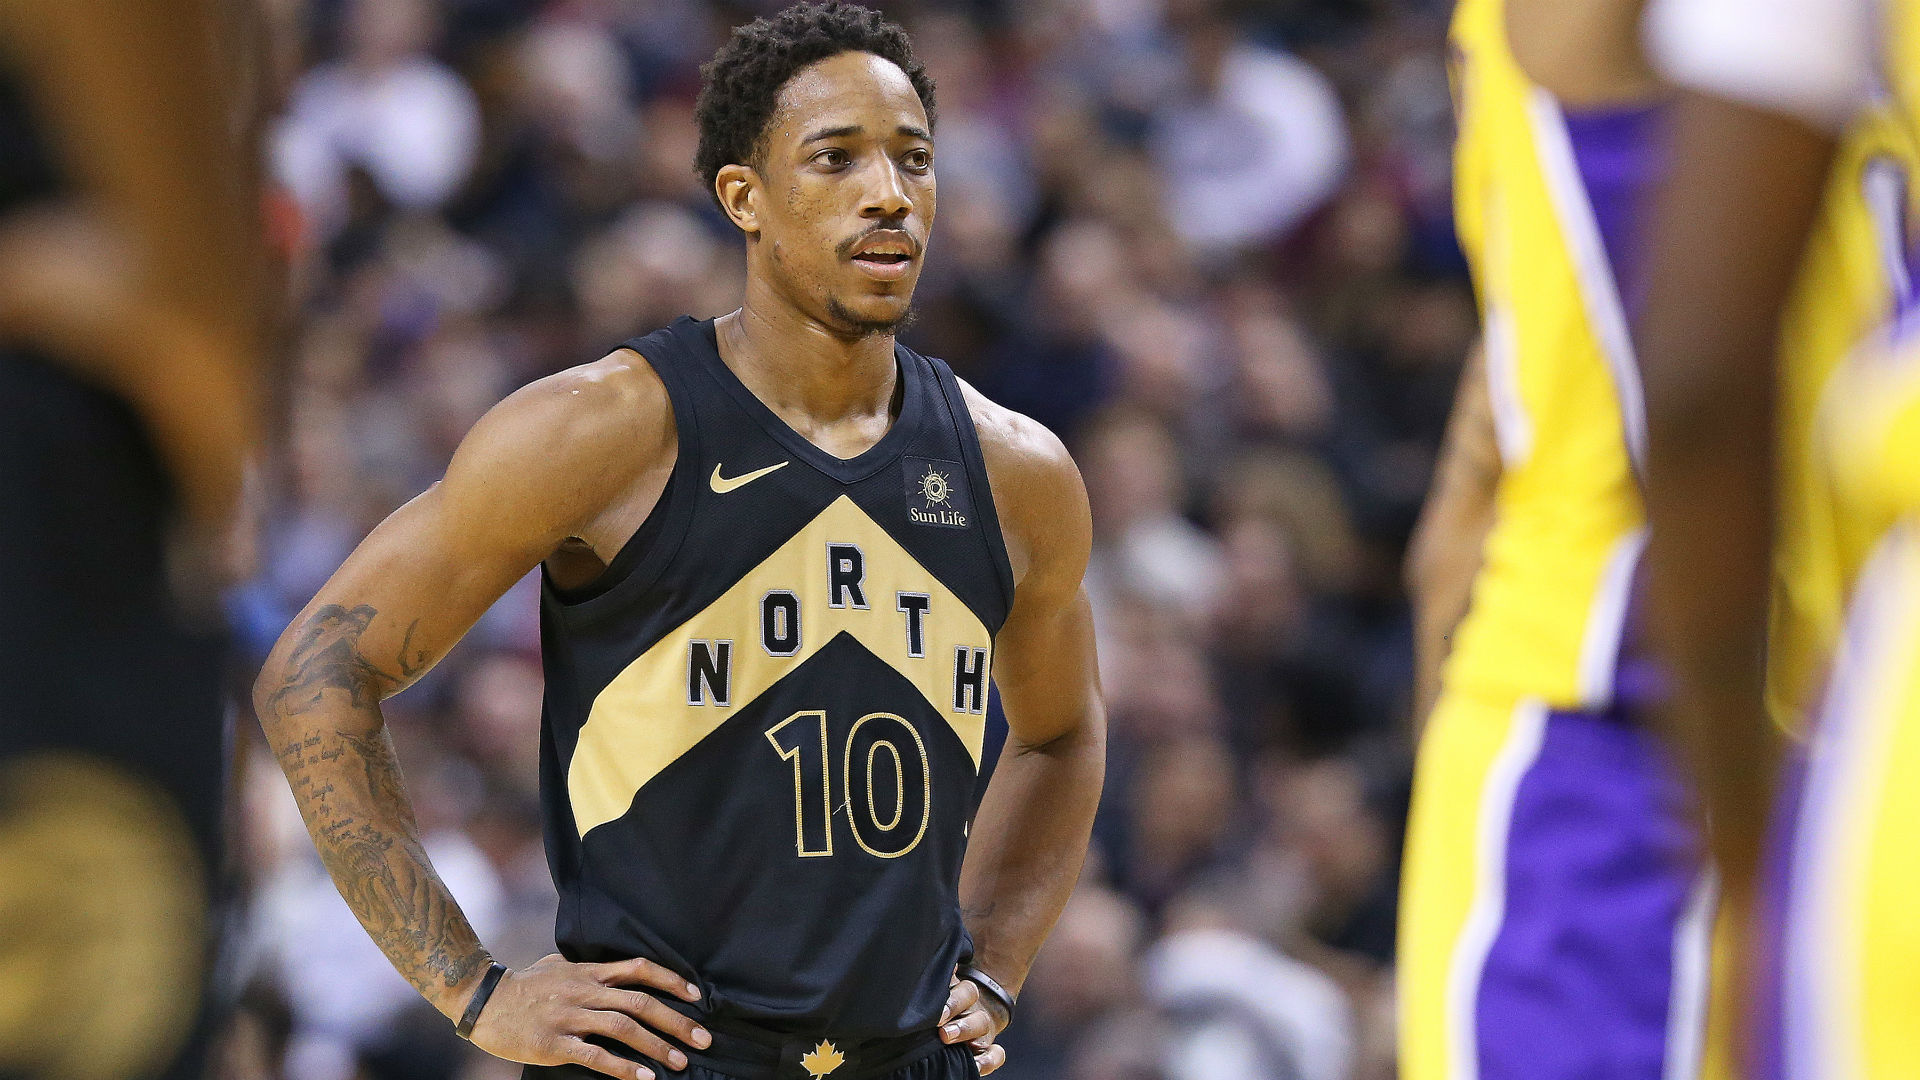 Raptors guard DeRozan named Eastern Conference player of the month